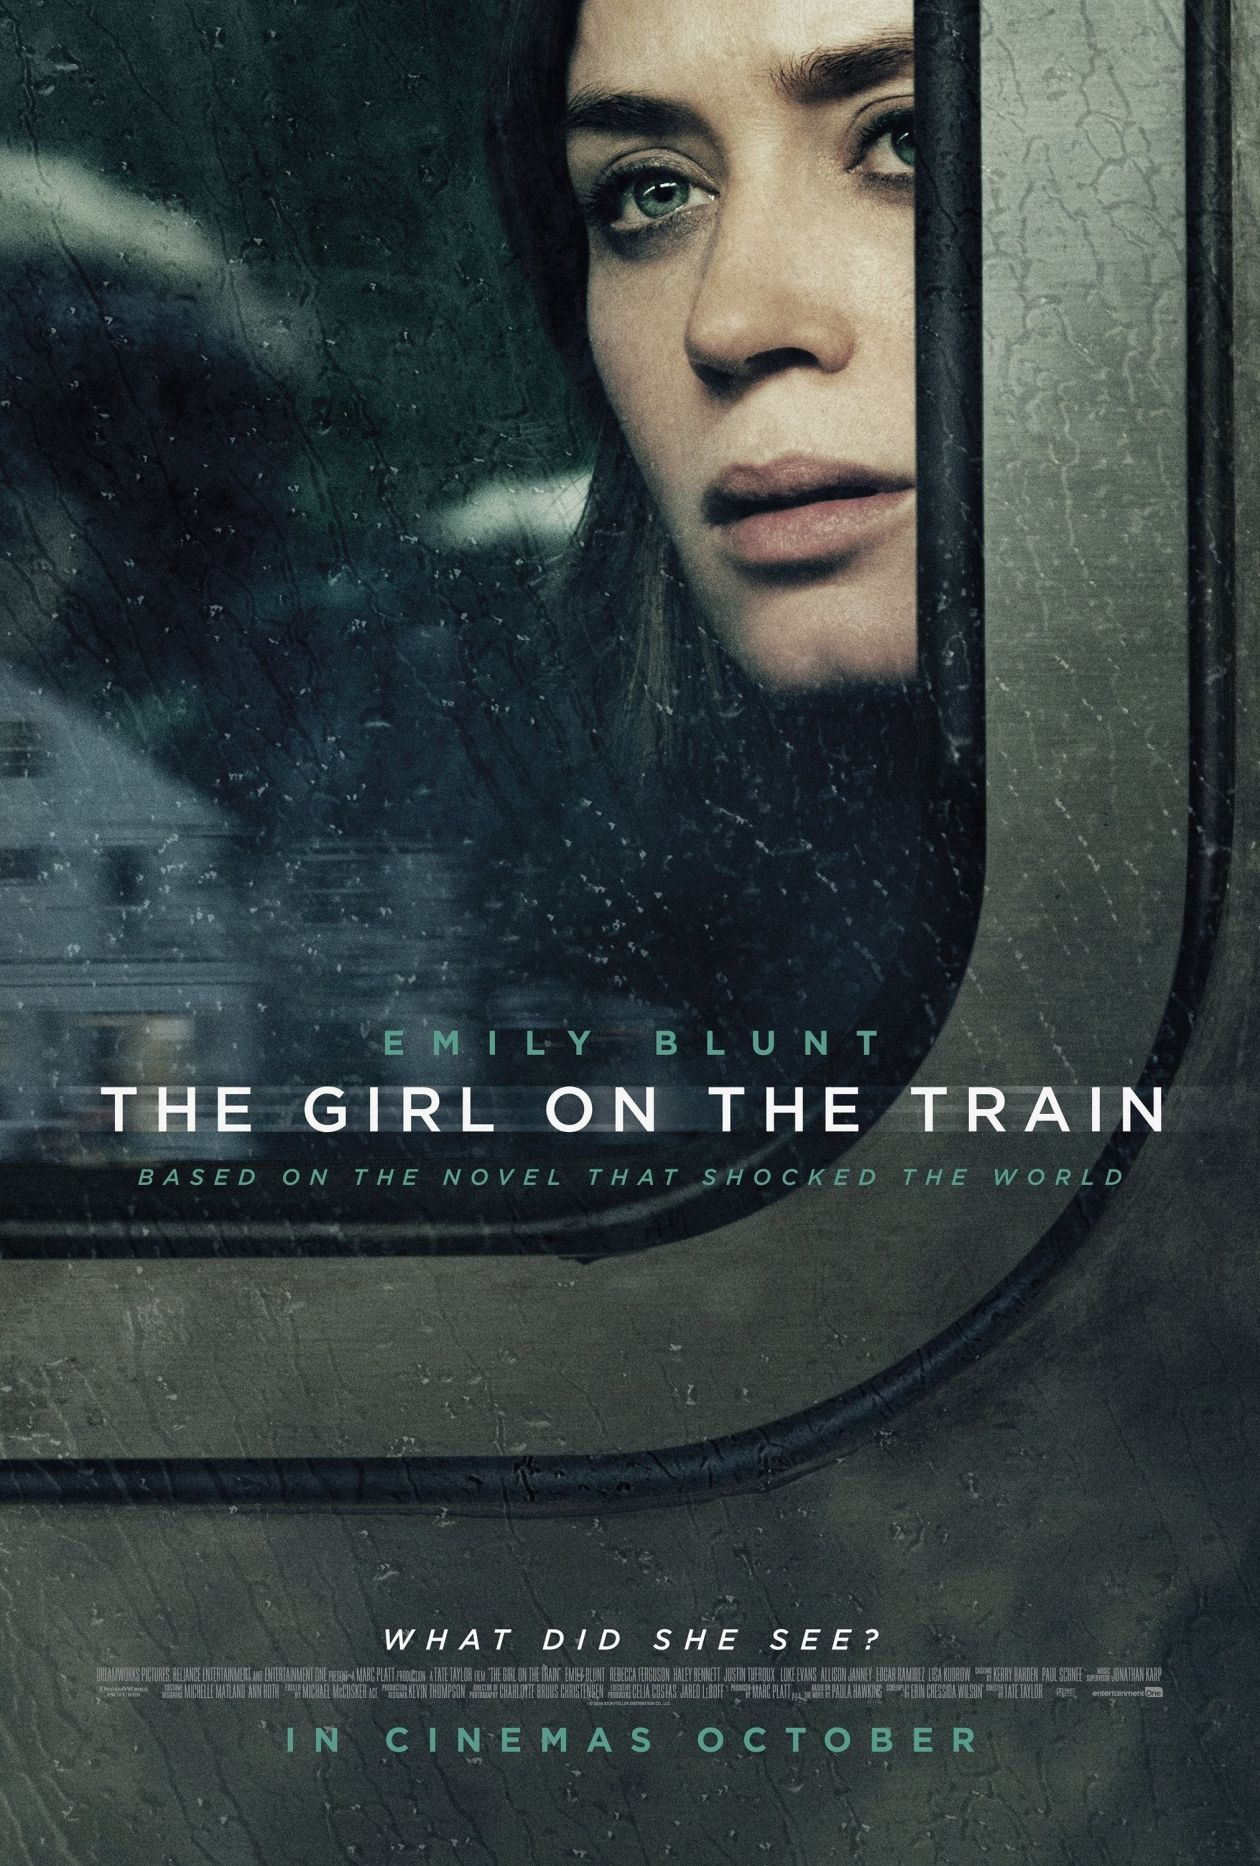 Emily Blunt actress | The Girl on the Train / Tate Taylor 2016 Movie Poster Affiche film